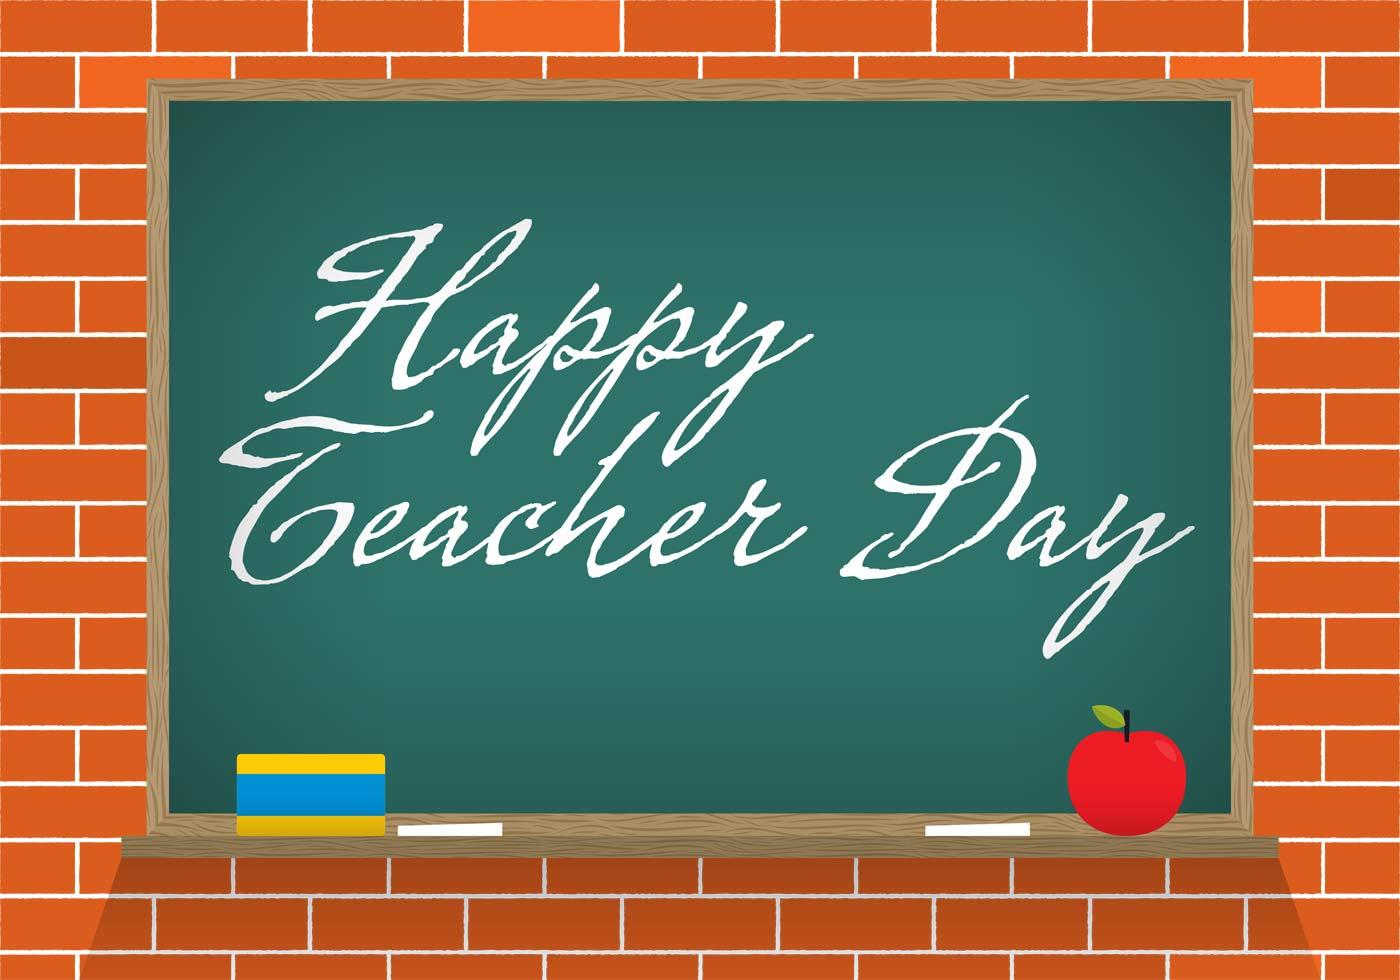 essay about teachers day celebration in school Teachers' day is a special day for the appreciation of teachers, and may include celebrations to honor them for their special contributions in a particular field area, or the community in general.